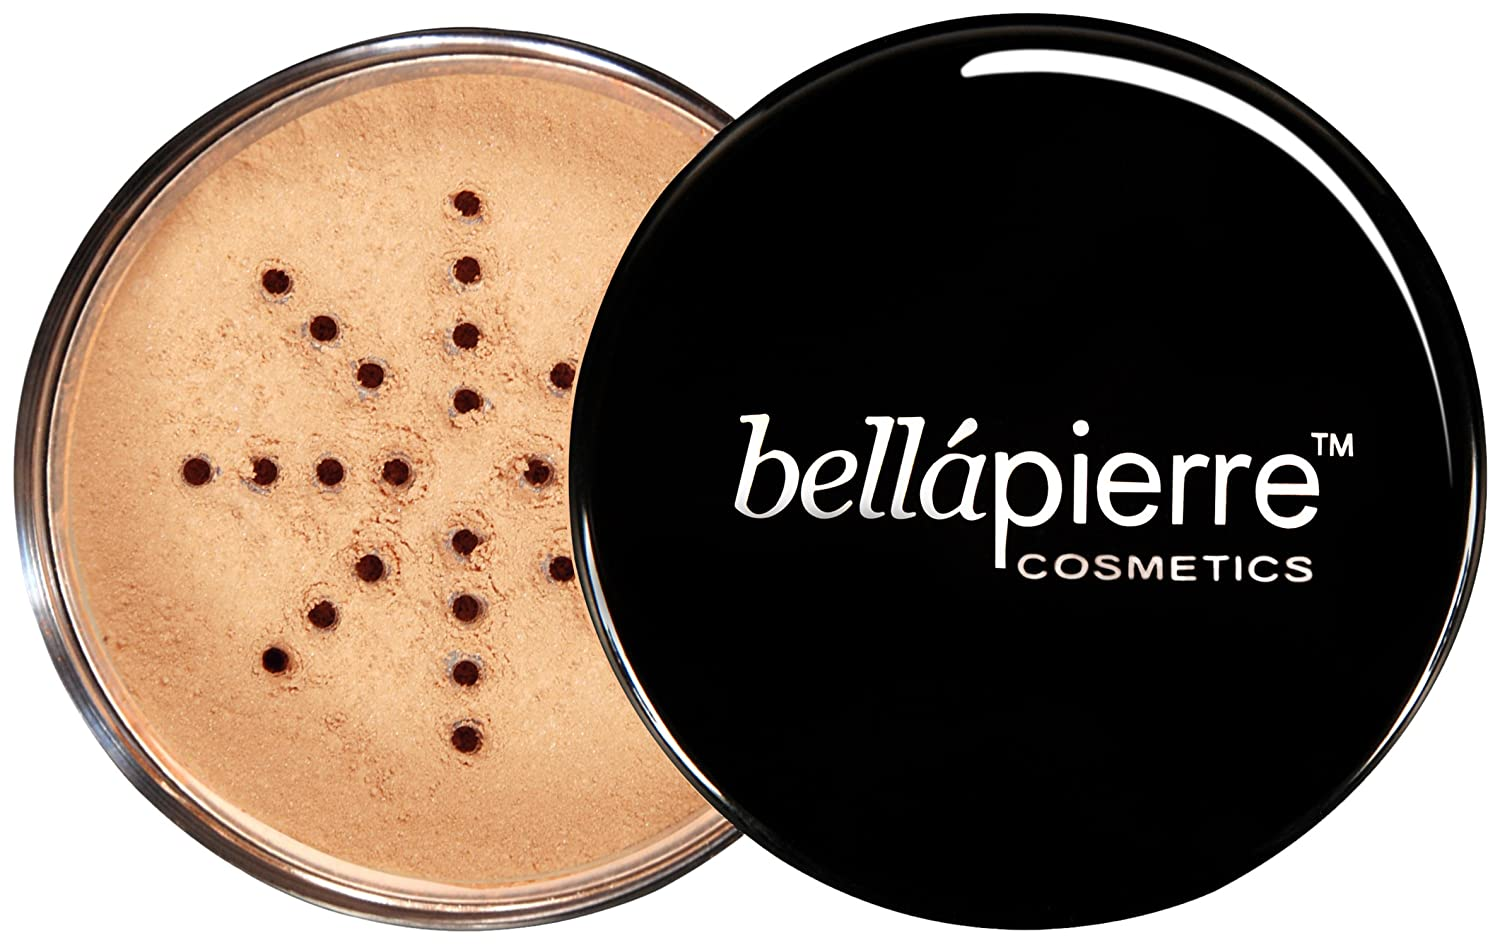 BellaPierre Lose Mineralpuder-Foundation, 9 g, Cinnamon 9 g Bellapierre Cosmetics MF004